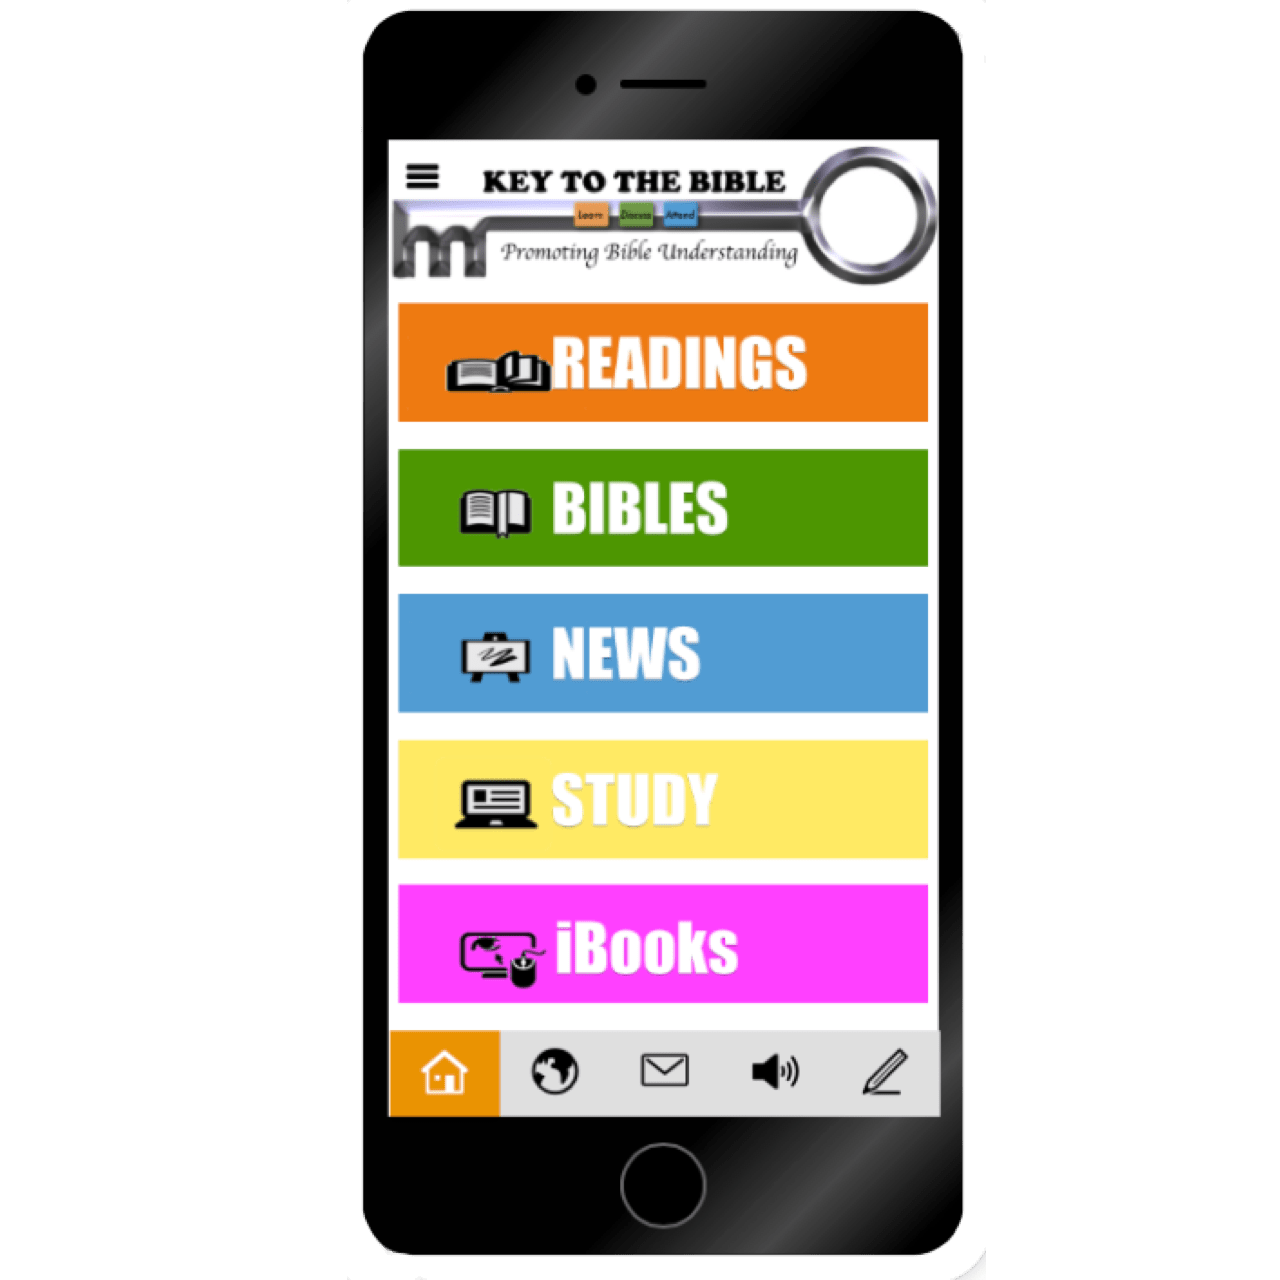 KeyToTheBible was created by Christadelphians for everyone to learn about God's message.